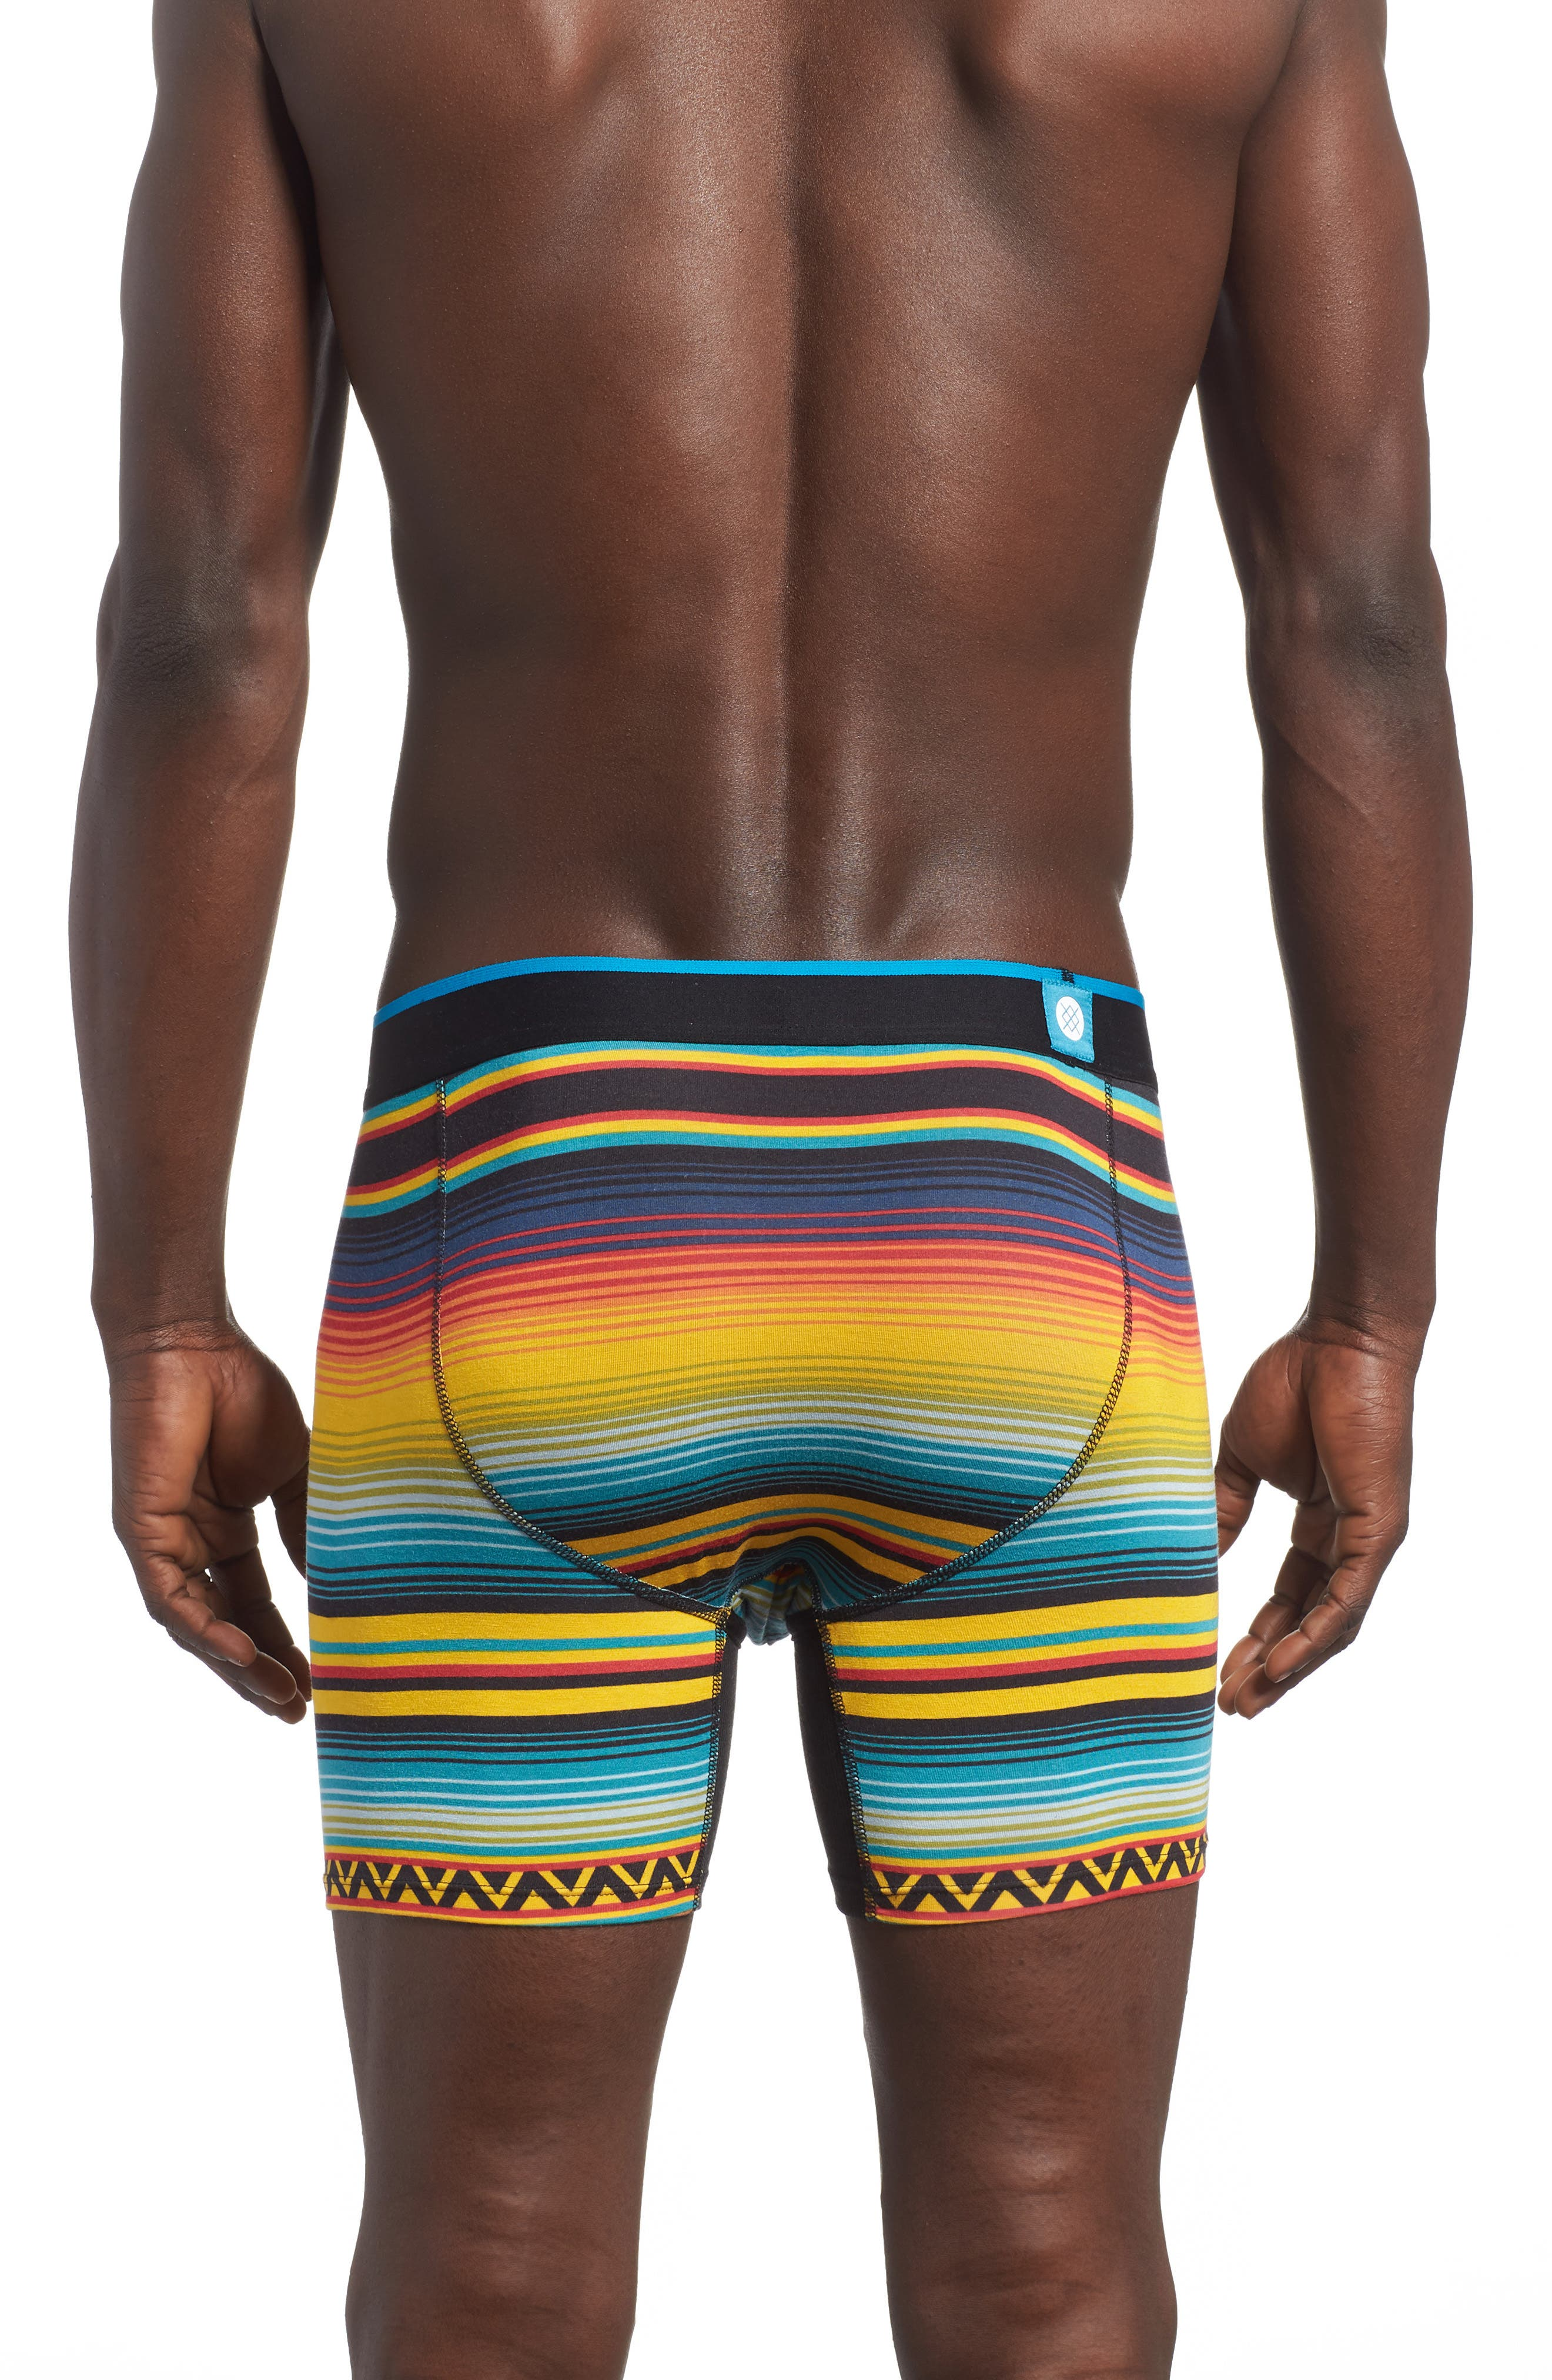 Dark Days Wholester Boxer Briefs,                             Alternate thumbnail 2, color,                             Yellow Multi